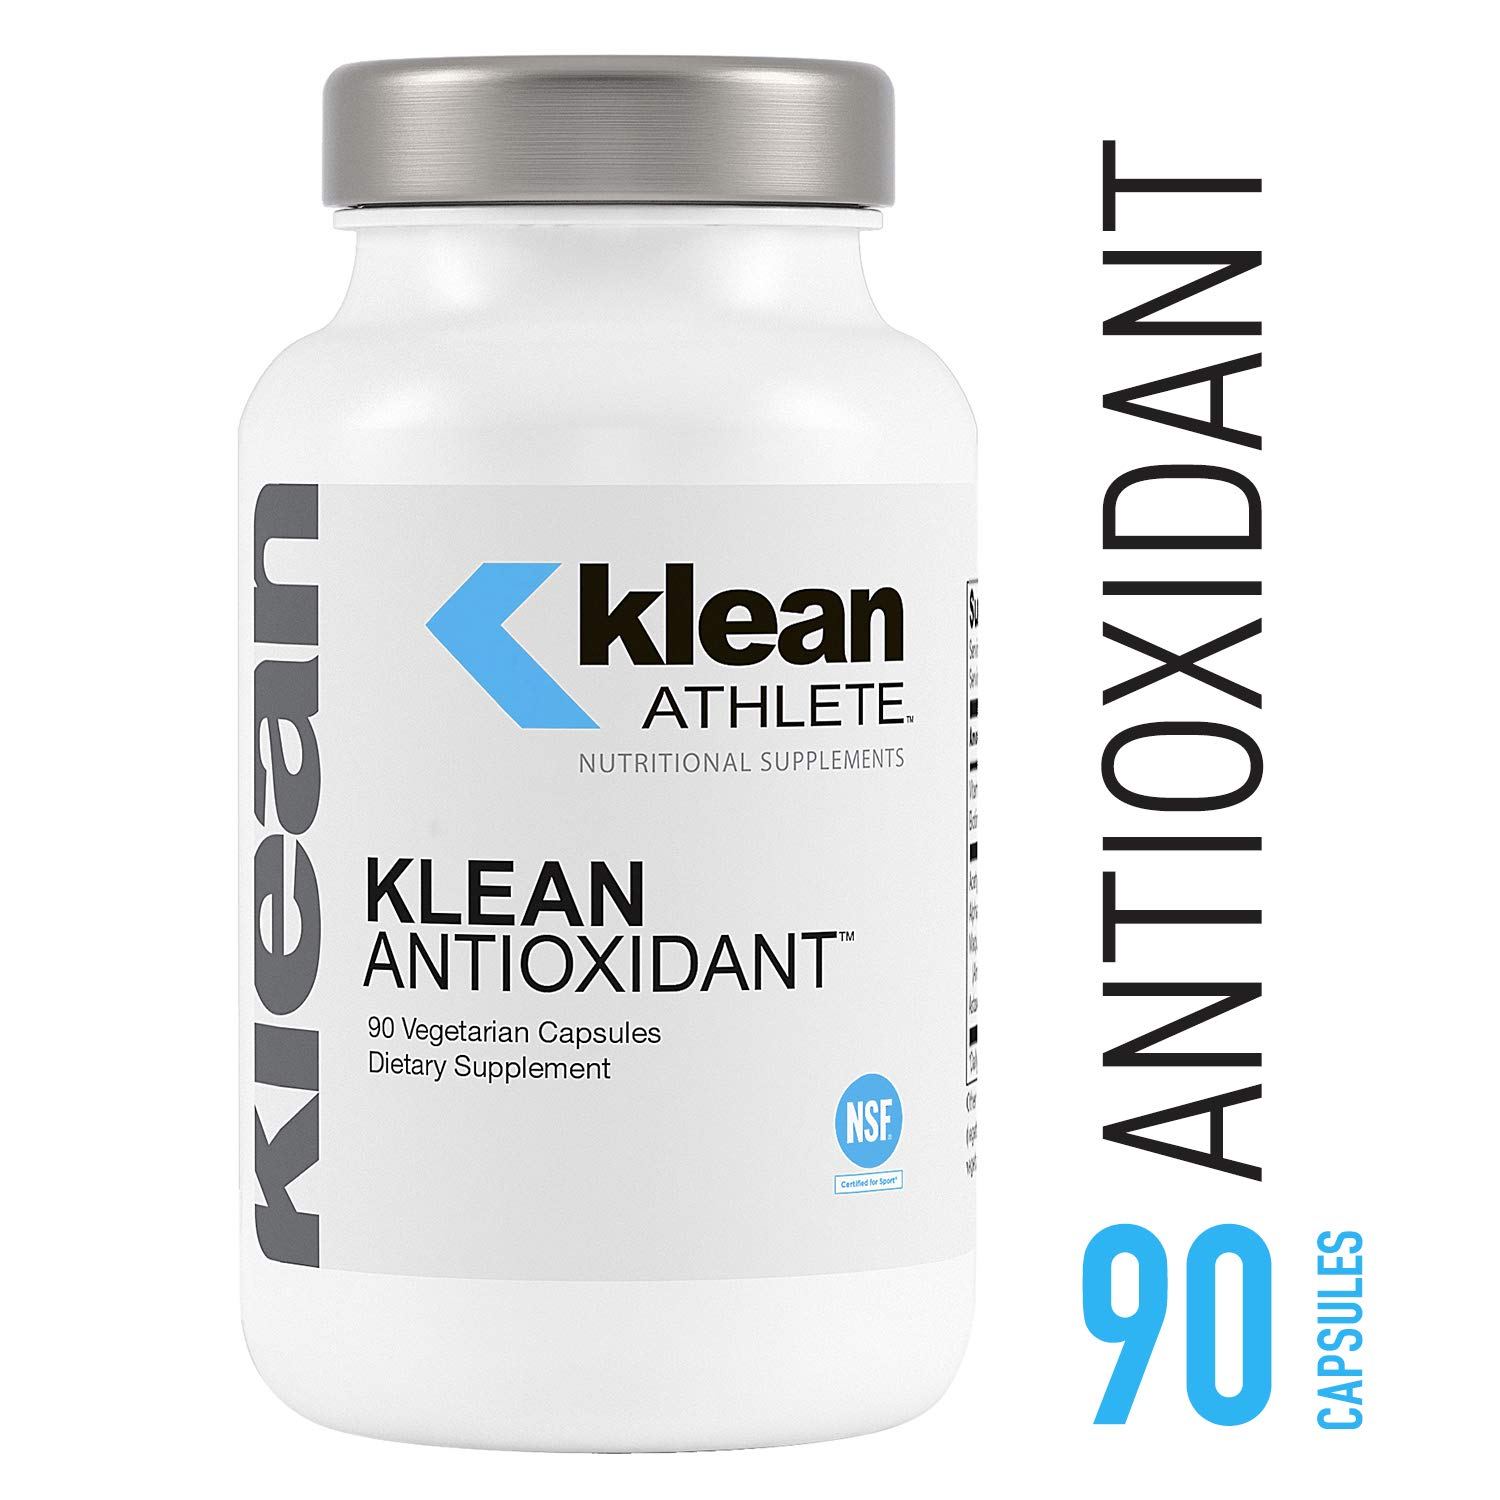 Klean Athlete - Klean Antioxidant - ALA, L-Carnitine and Antioxidants to Help Guard Against Cellular Damage from Intense Training* - NSF Certified for Sport - 90 Capsules